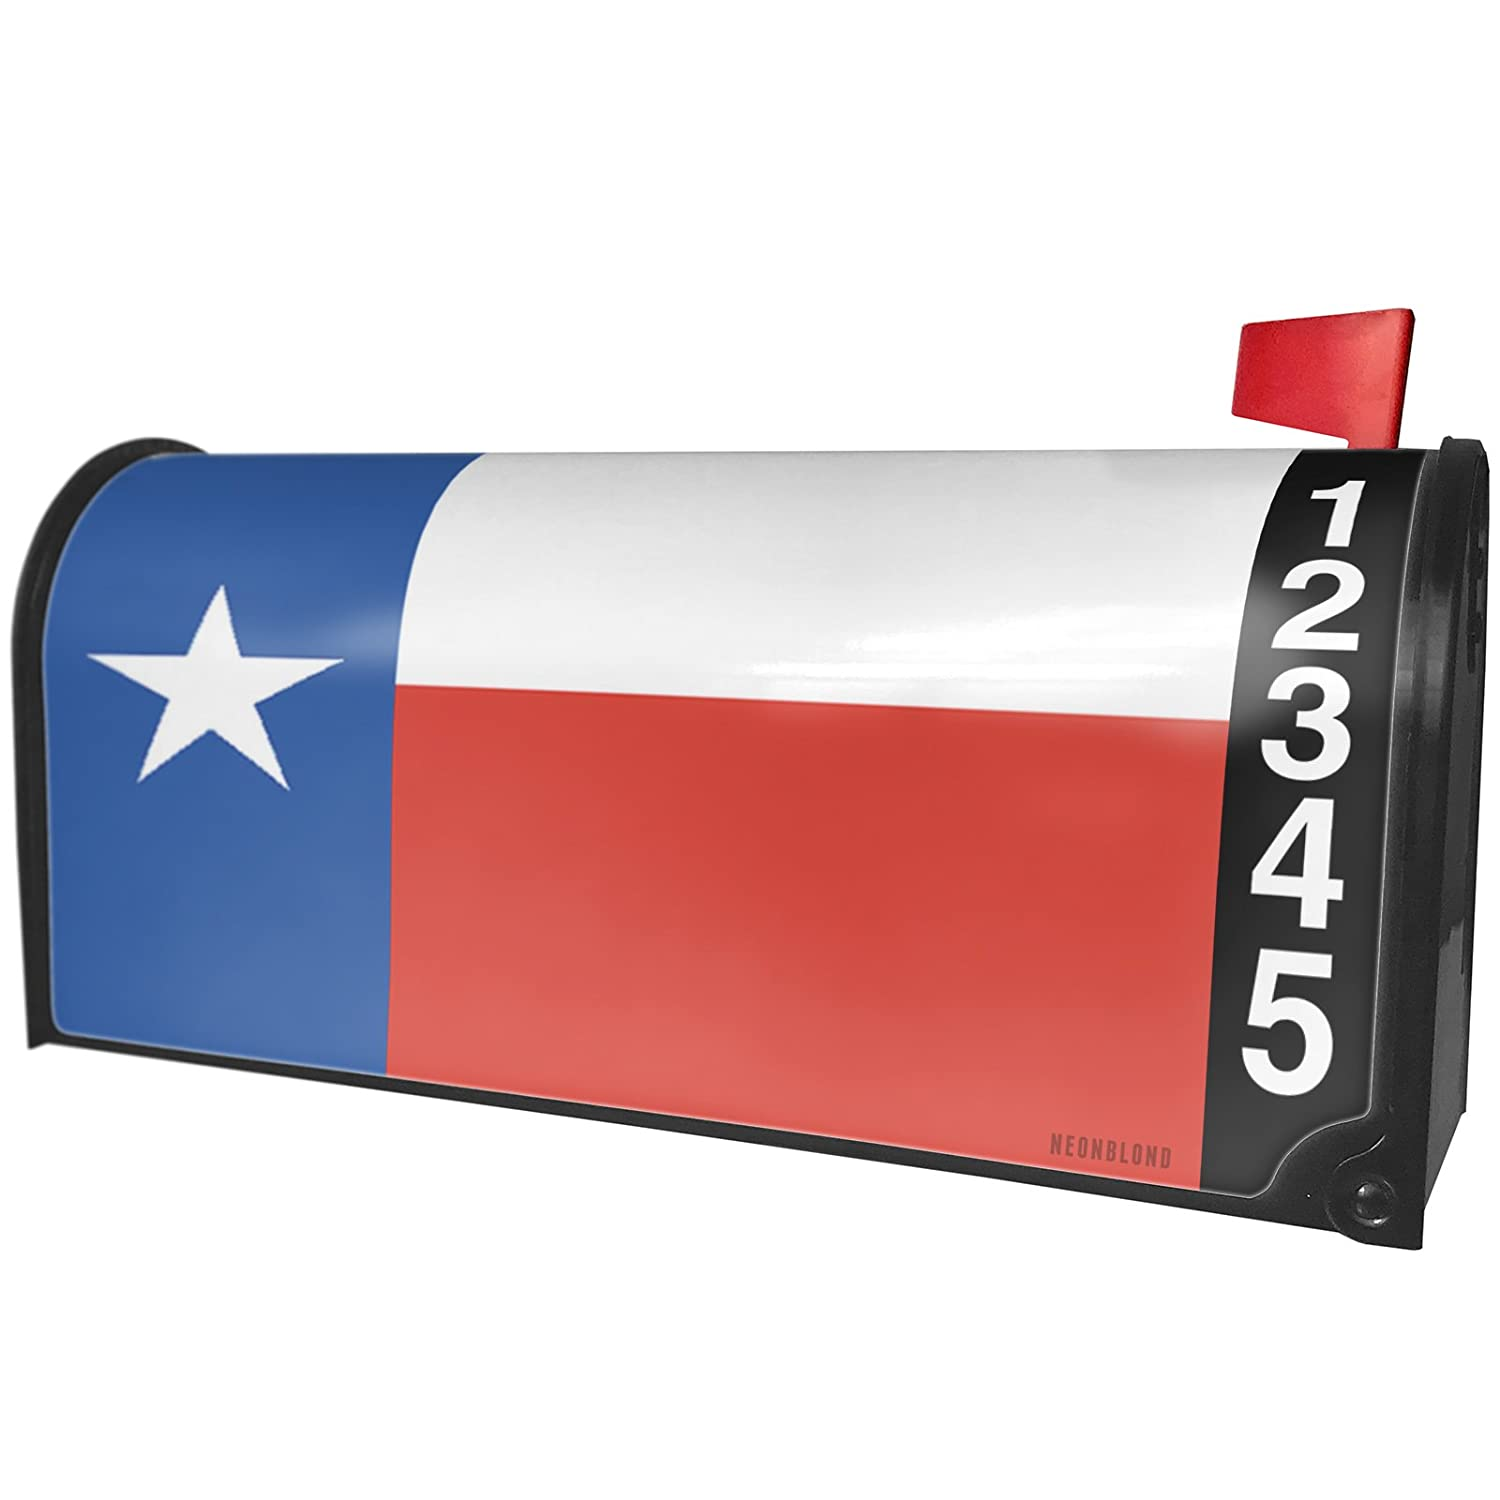 NEONBLOND Flag on Wood Texas Region USA America Magnetic Mailbox Cover Custom Numbers